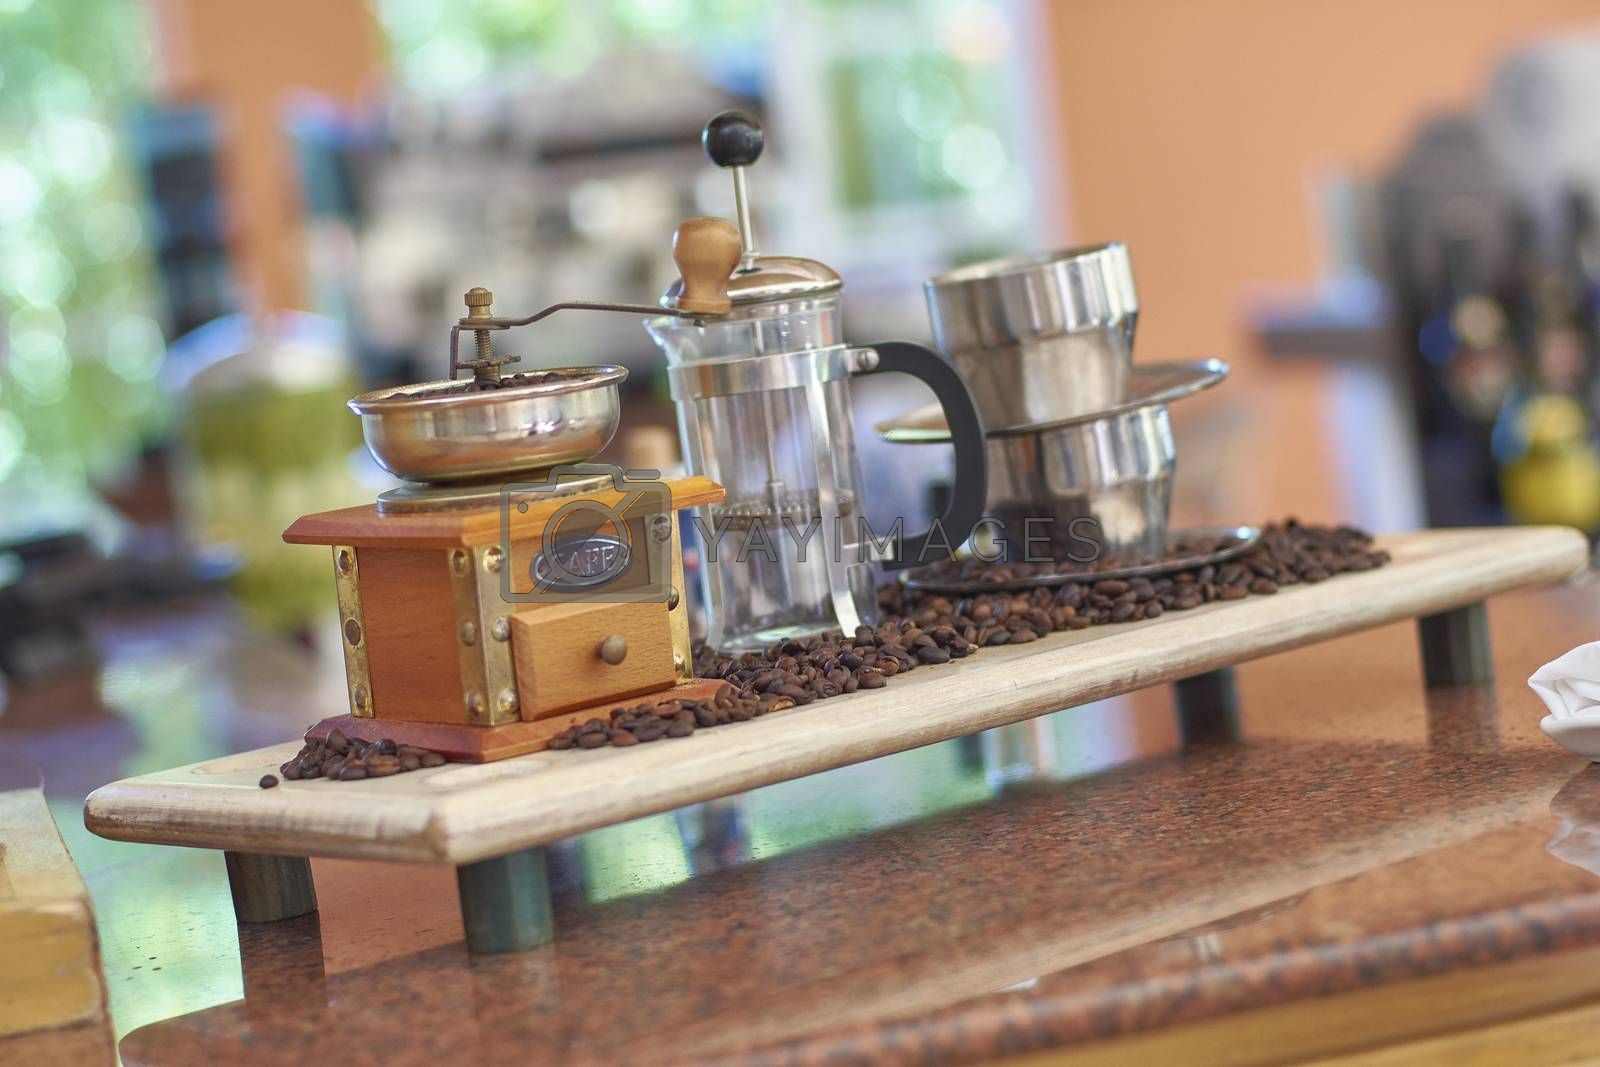 Still life with a vintage coffee grinder, coffee beans and other objects for the preparation of a good coffee.